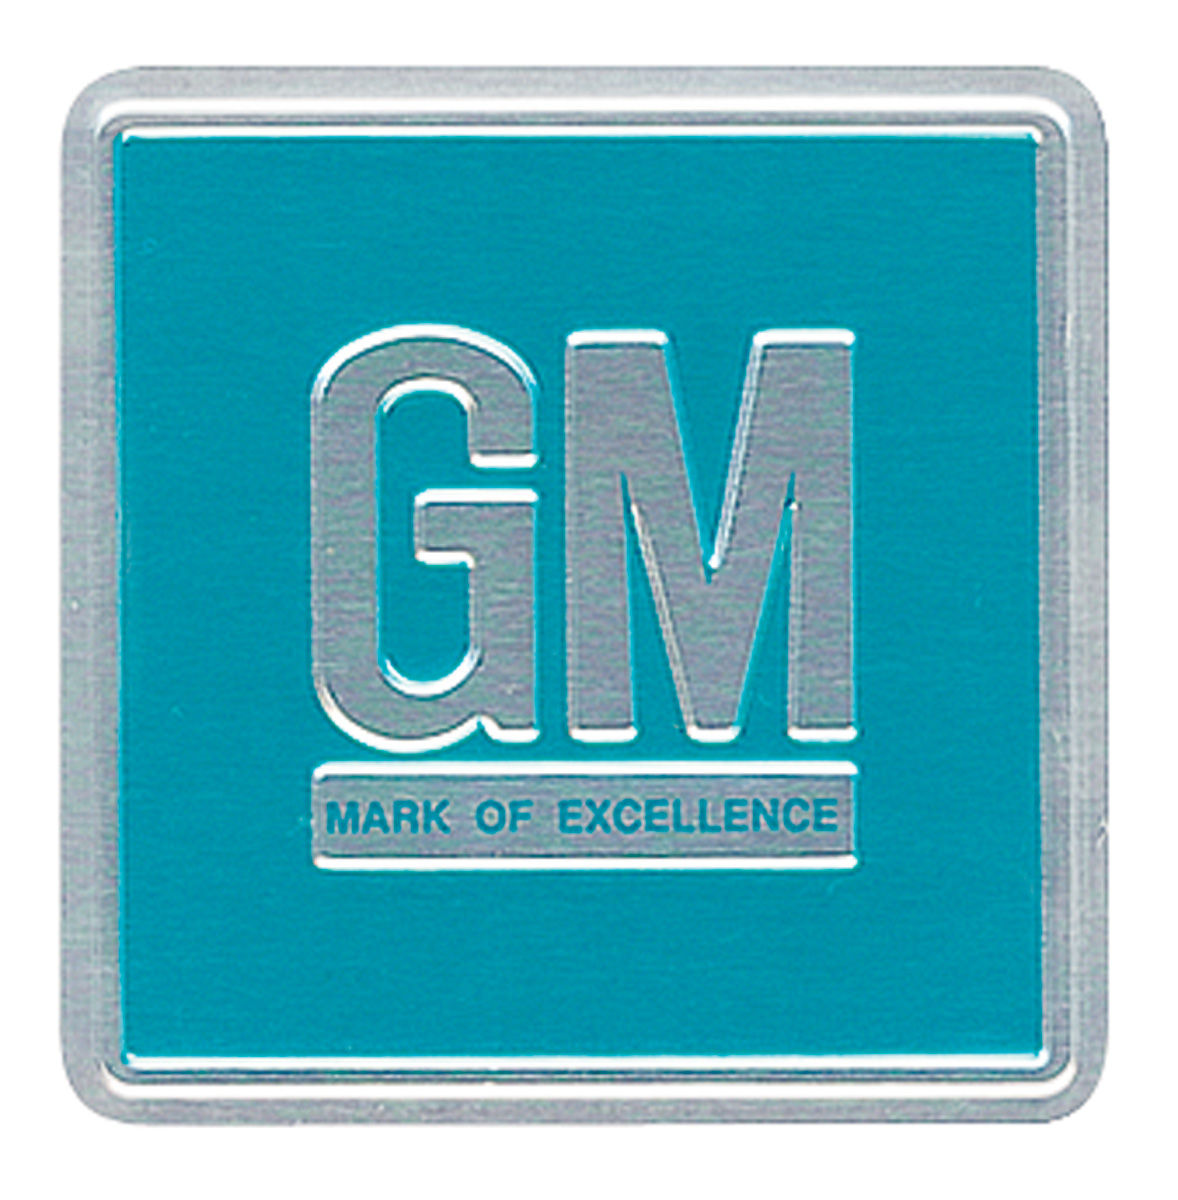 Photo of Mark Of Excellence Decal turquoise